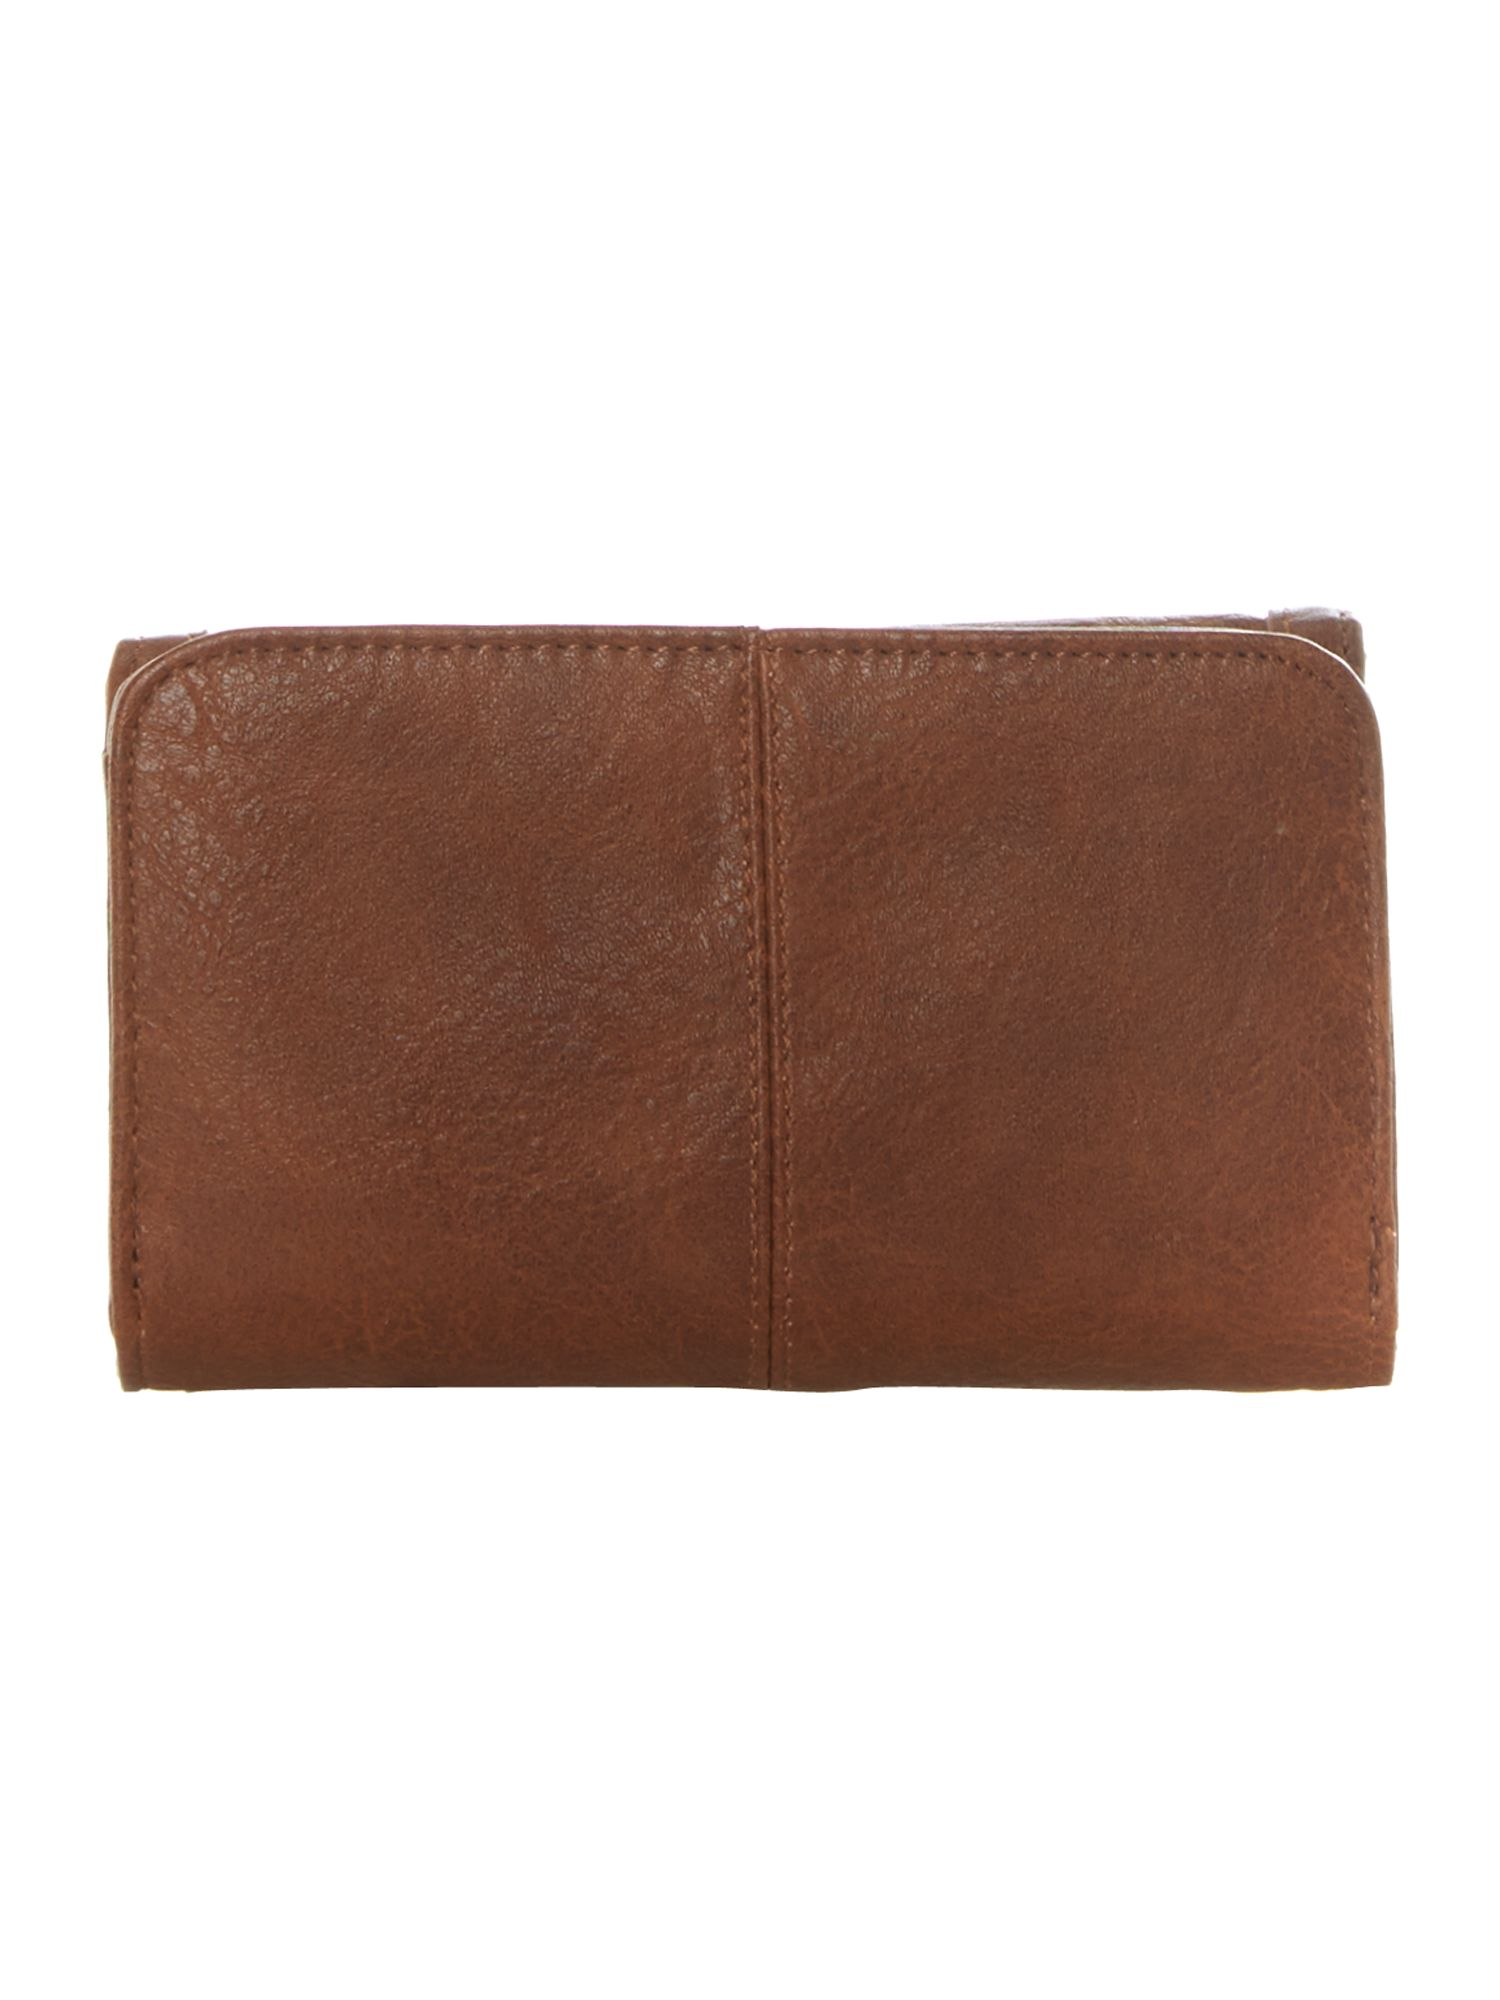 Tan small flapover purse